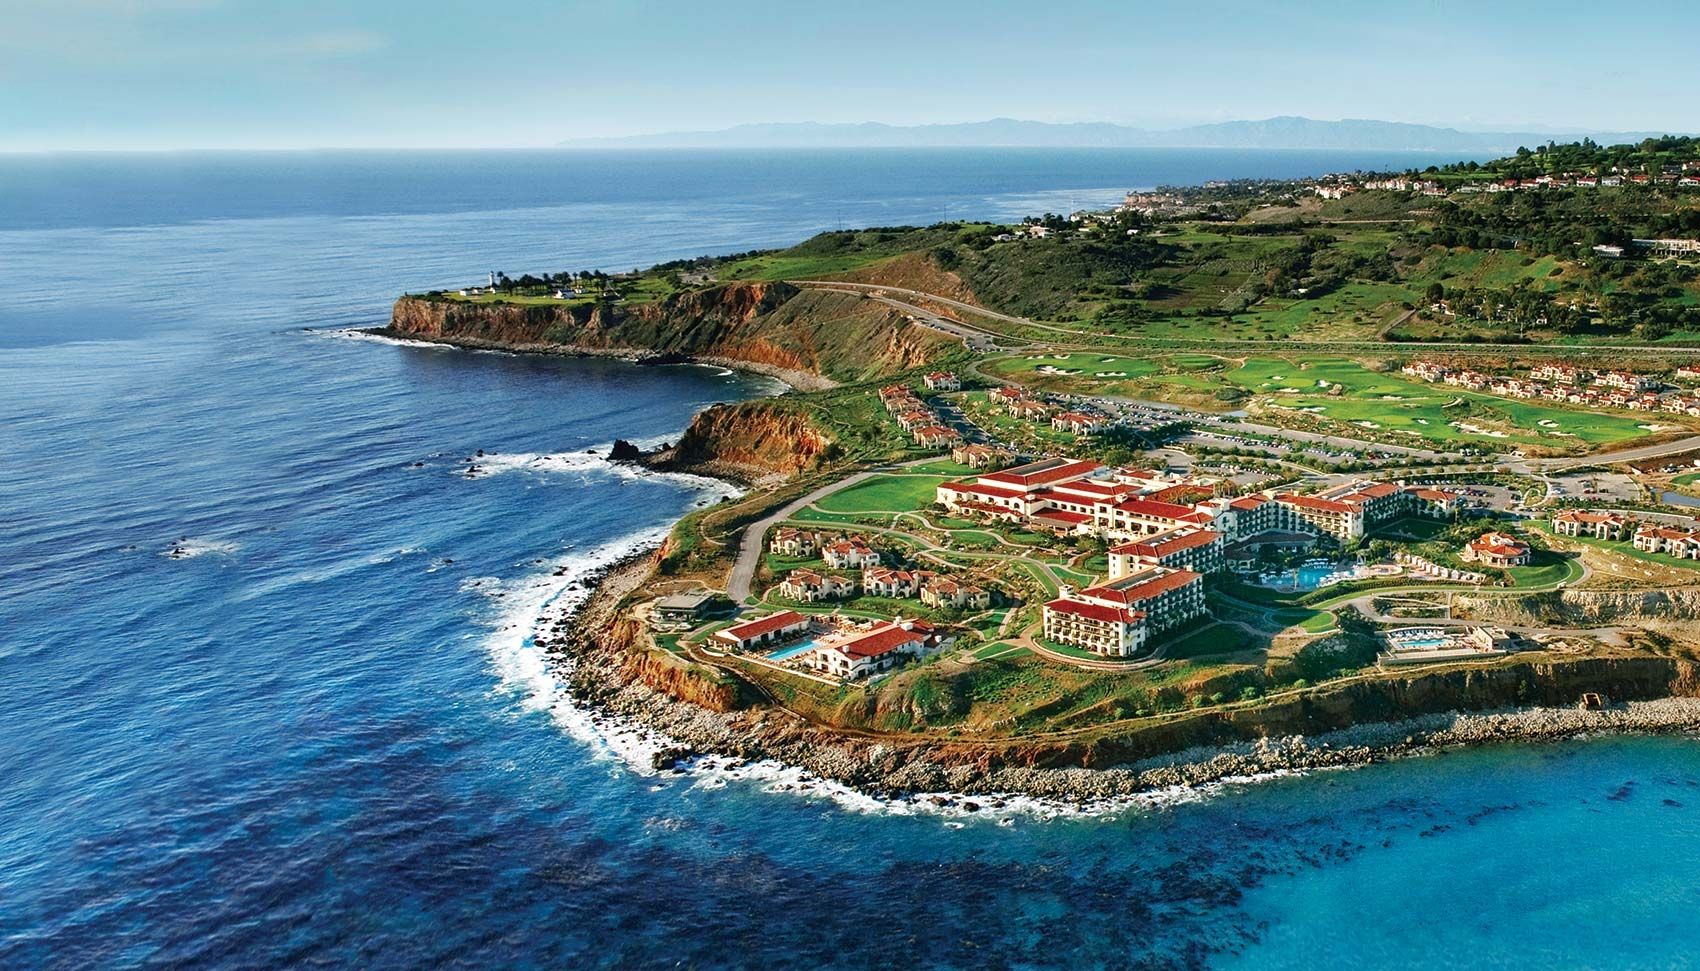 California, here I come! The beautiful Terranea Resort was the site of our workshop.